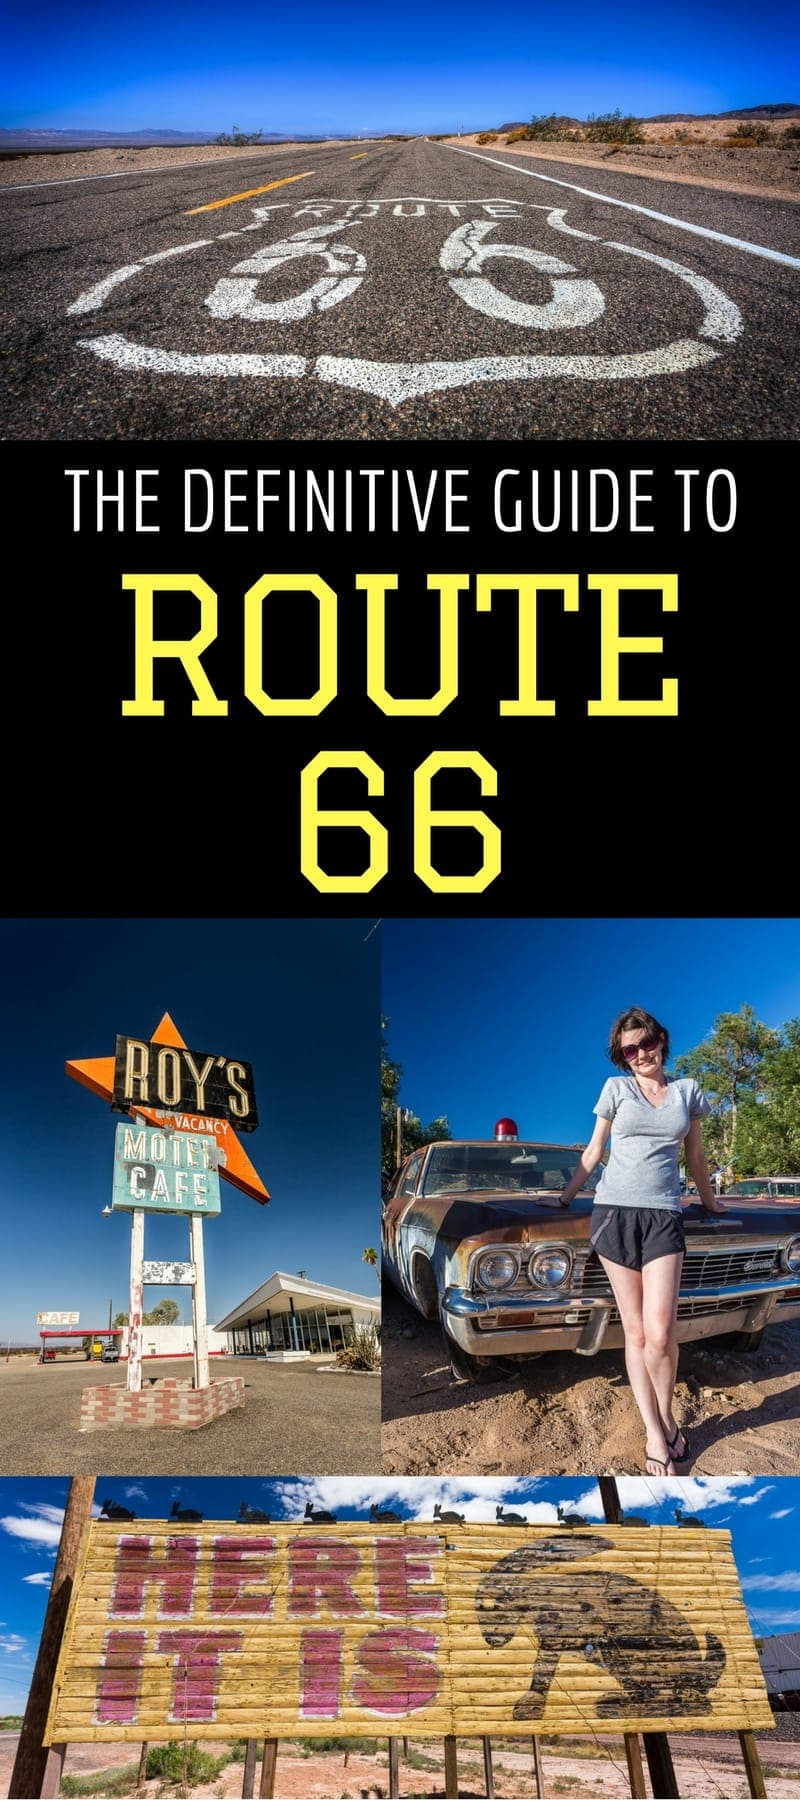 A complete guide to planning your Route 66 road trip - the ultimate American road trip. Learn how to follow Route 66, what to pack, how to pick your transportation, best planning materials, when to go, where to eat, where to stay, and more!